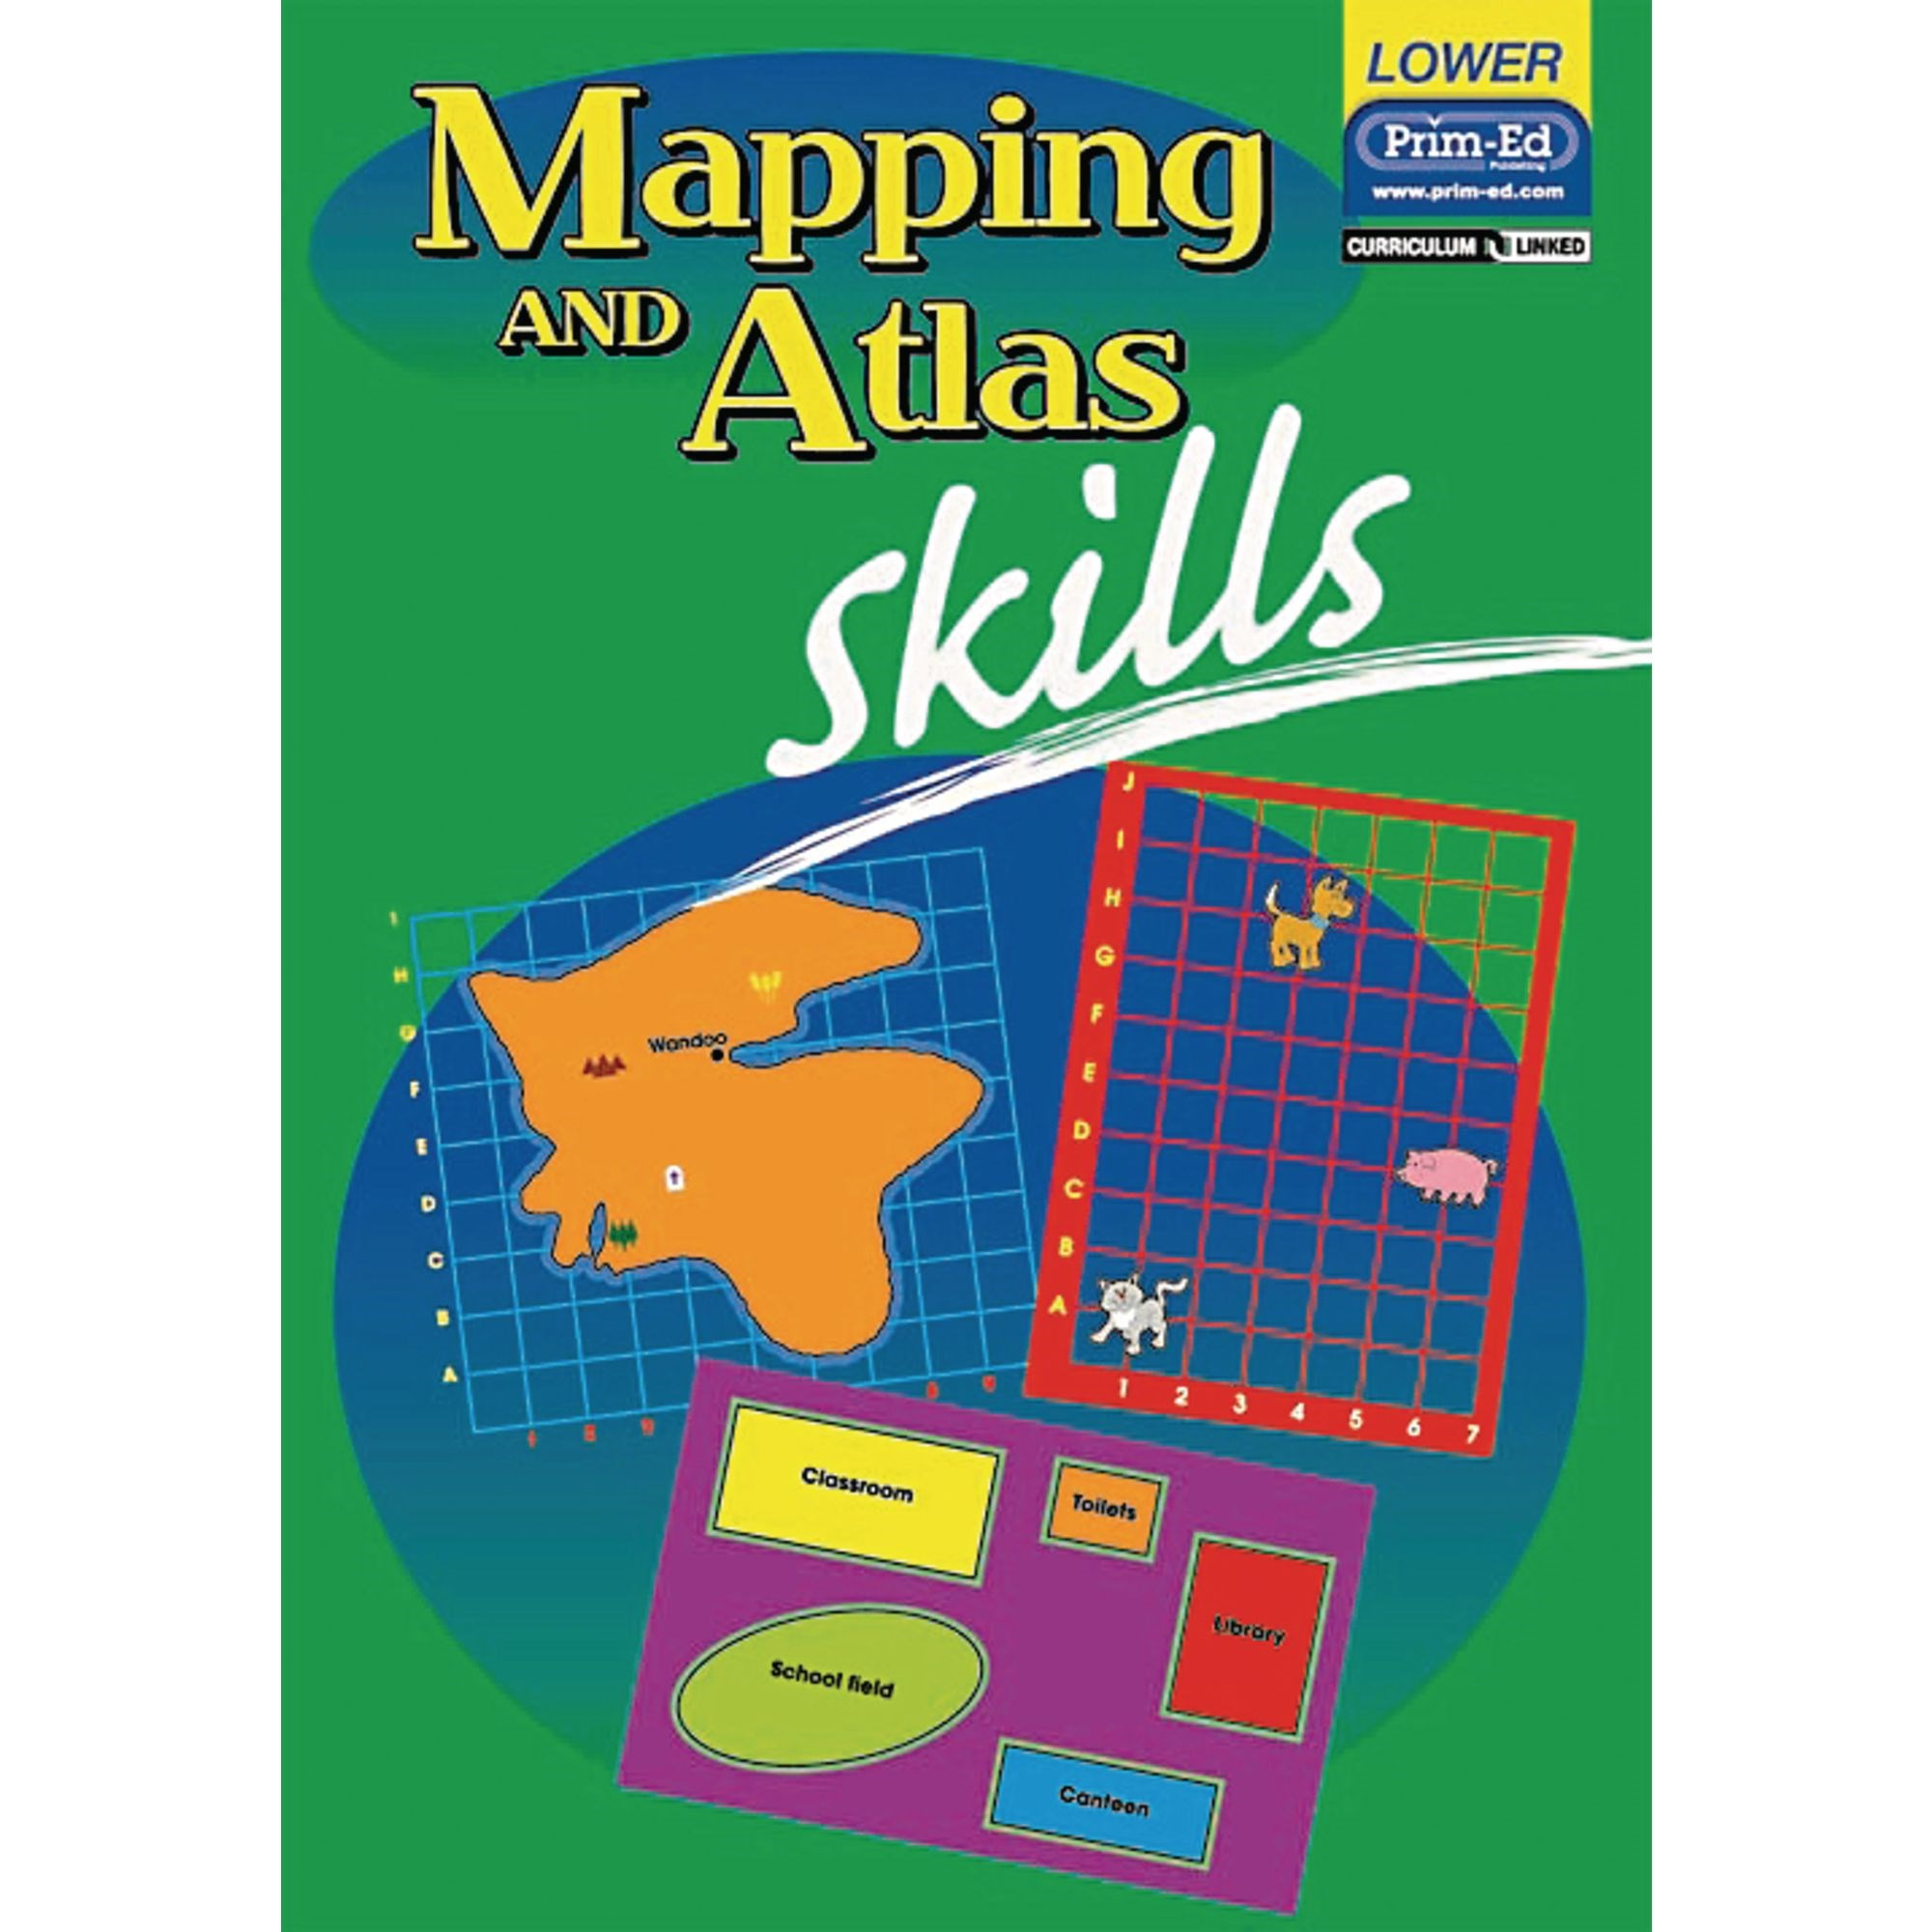 Mapping And Atlas Skills - Lower